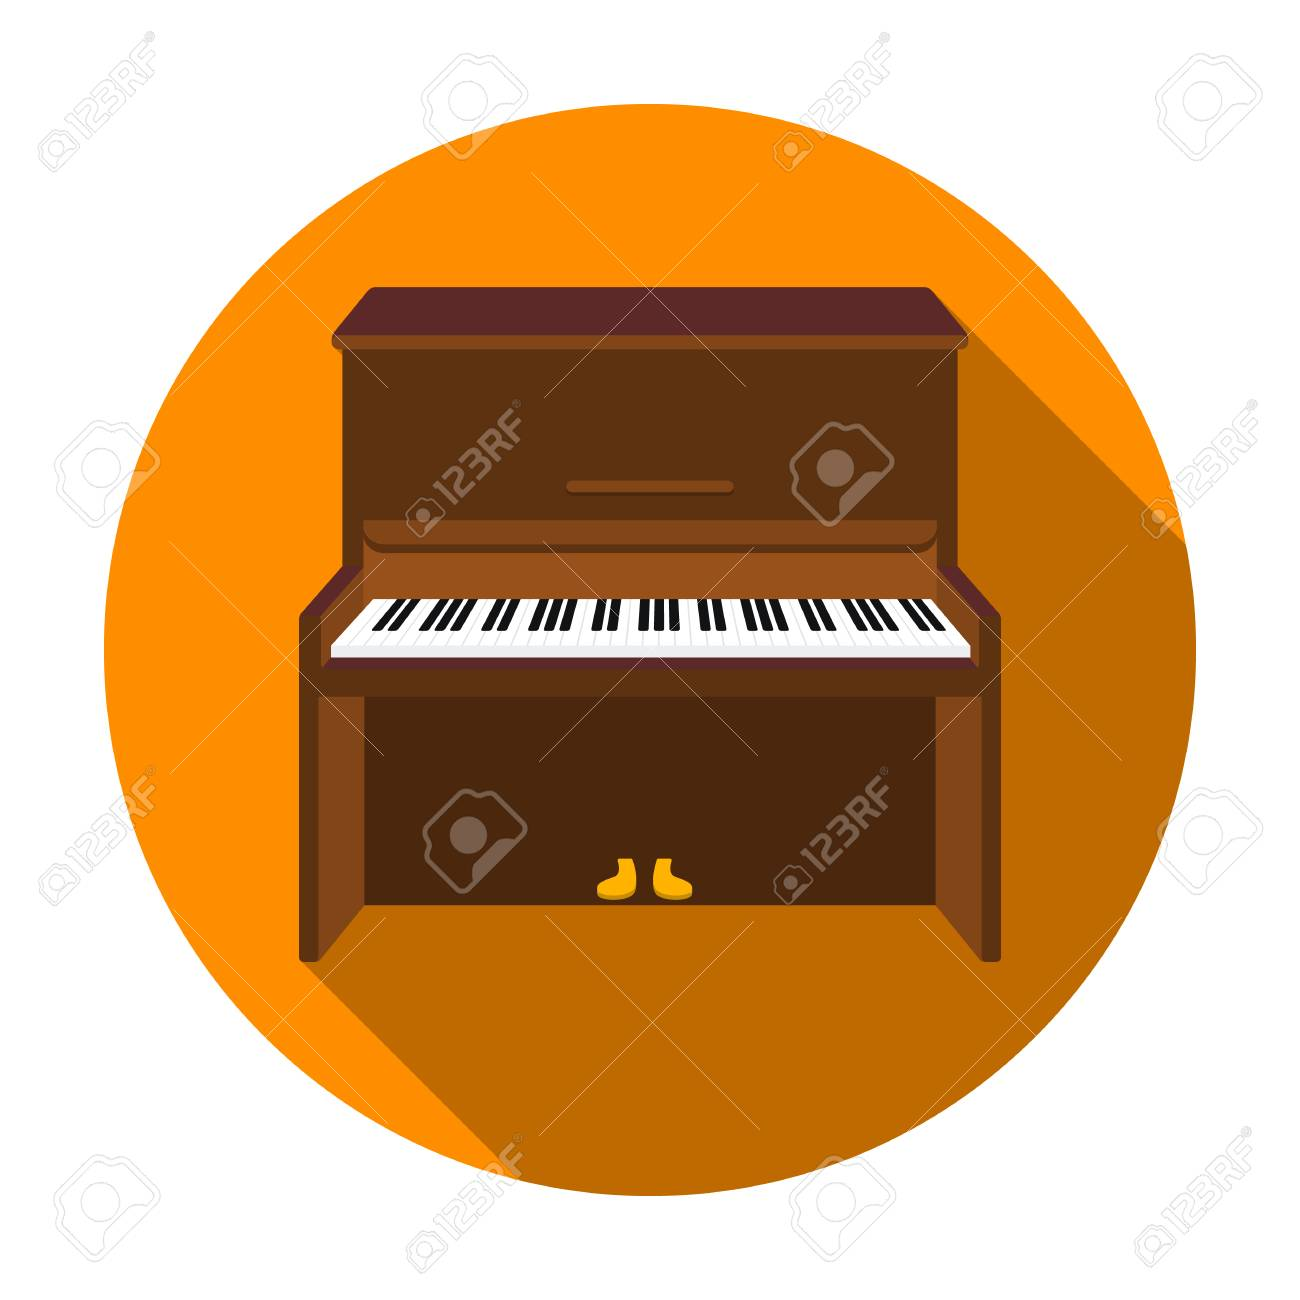 Piano Icon In Flat Style Isolated On White Background Musical